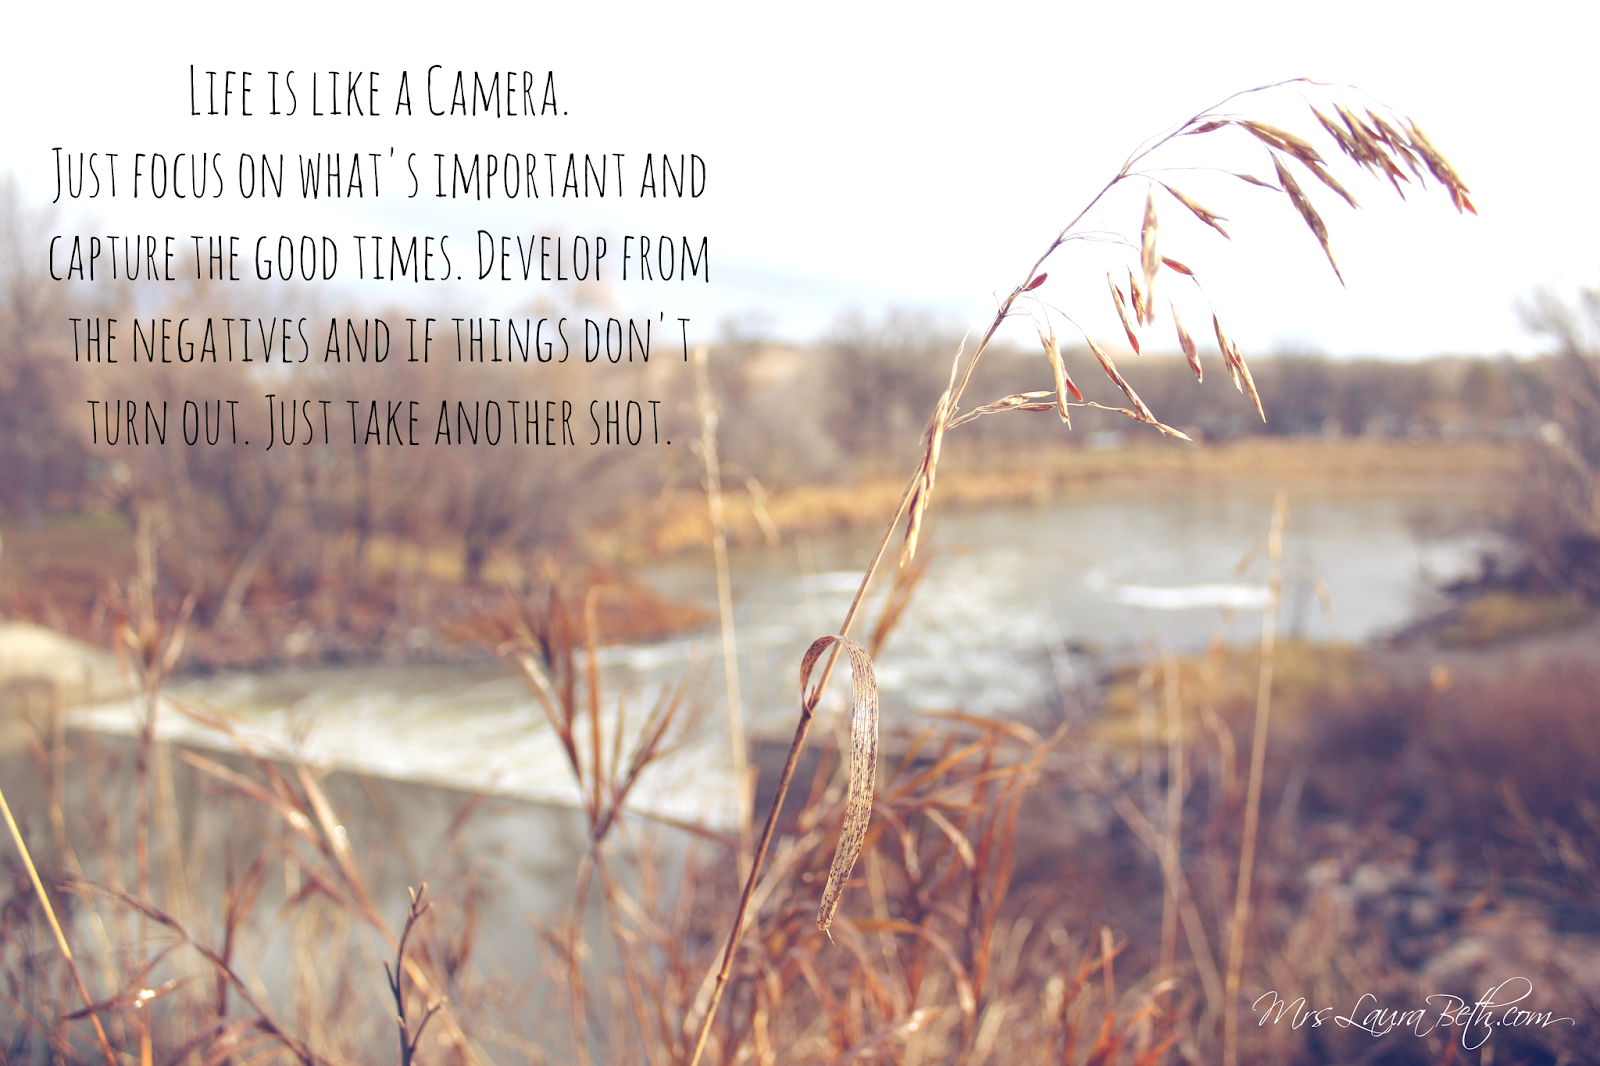 Life is like a camera, photography